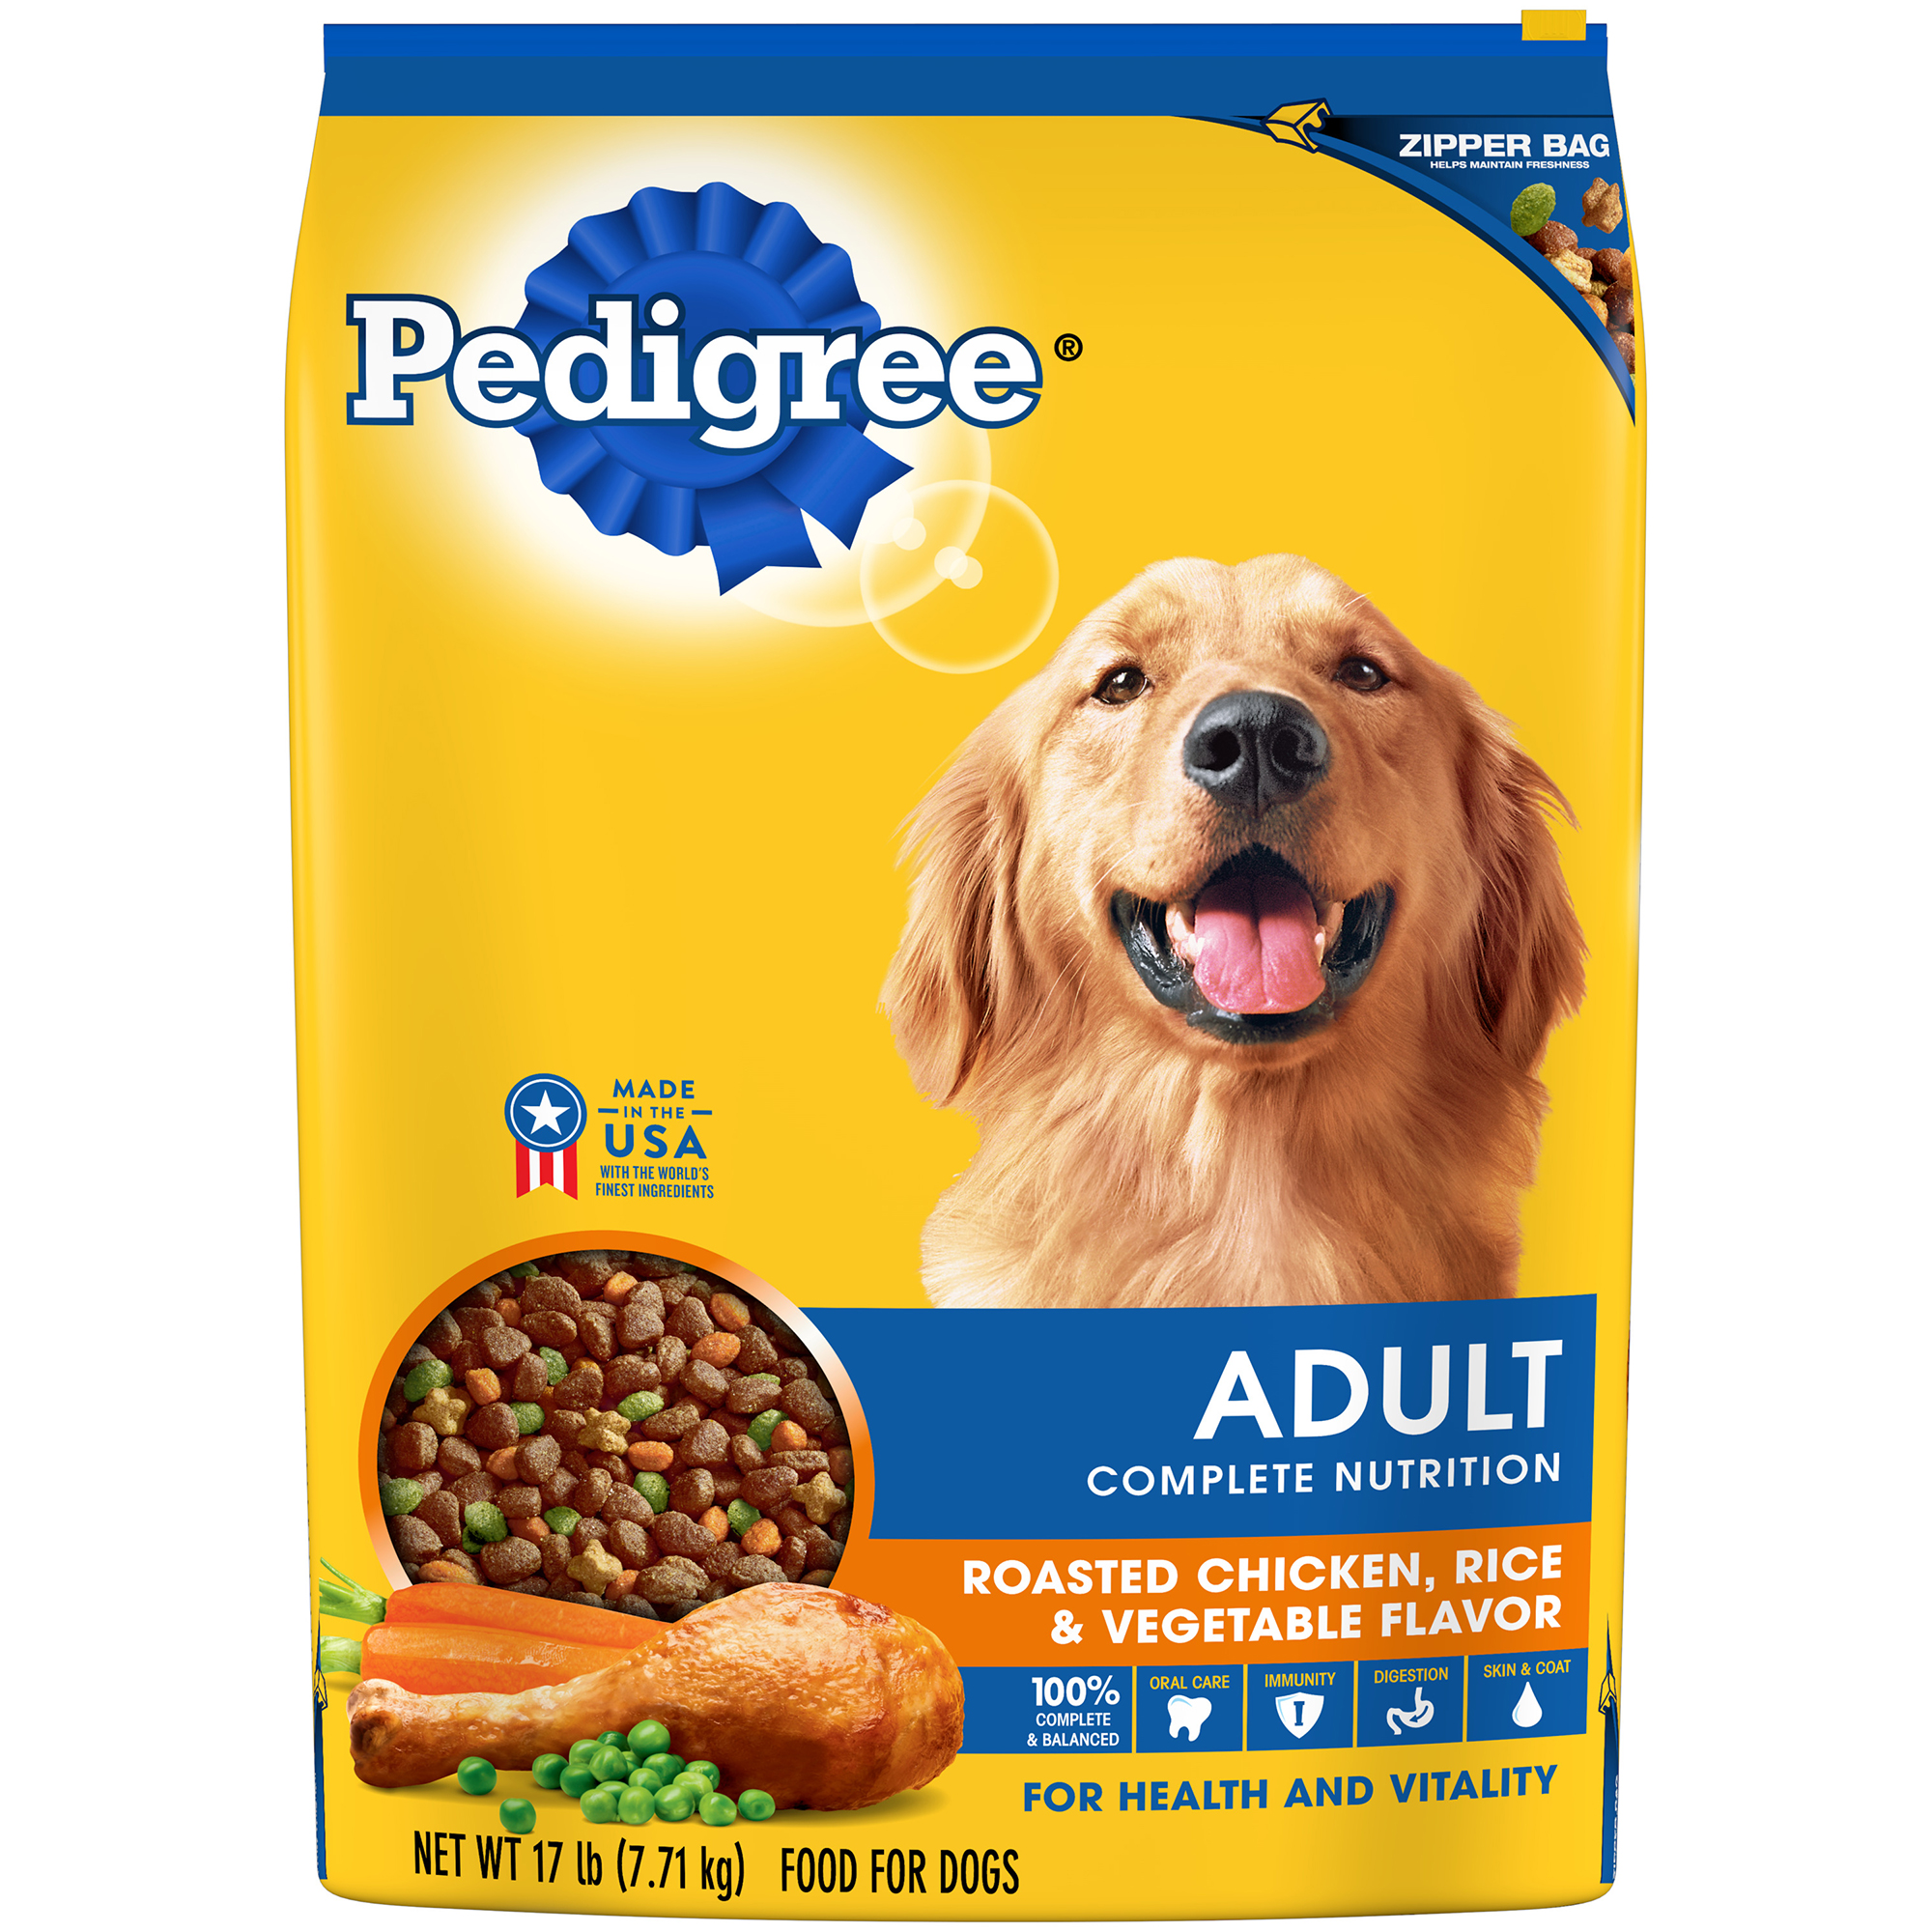 PEDIGREE Adult Complete Nutrition Roasted Chicken, Rice & Vegetable Flavor Dry Dog Food 17 Pounds